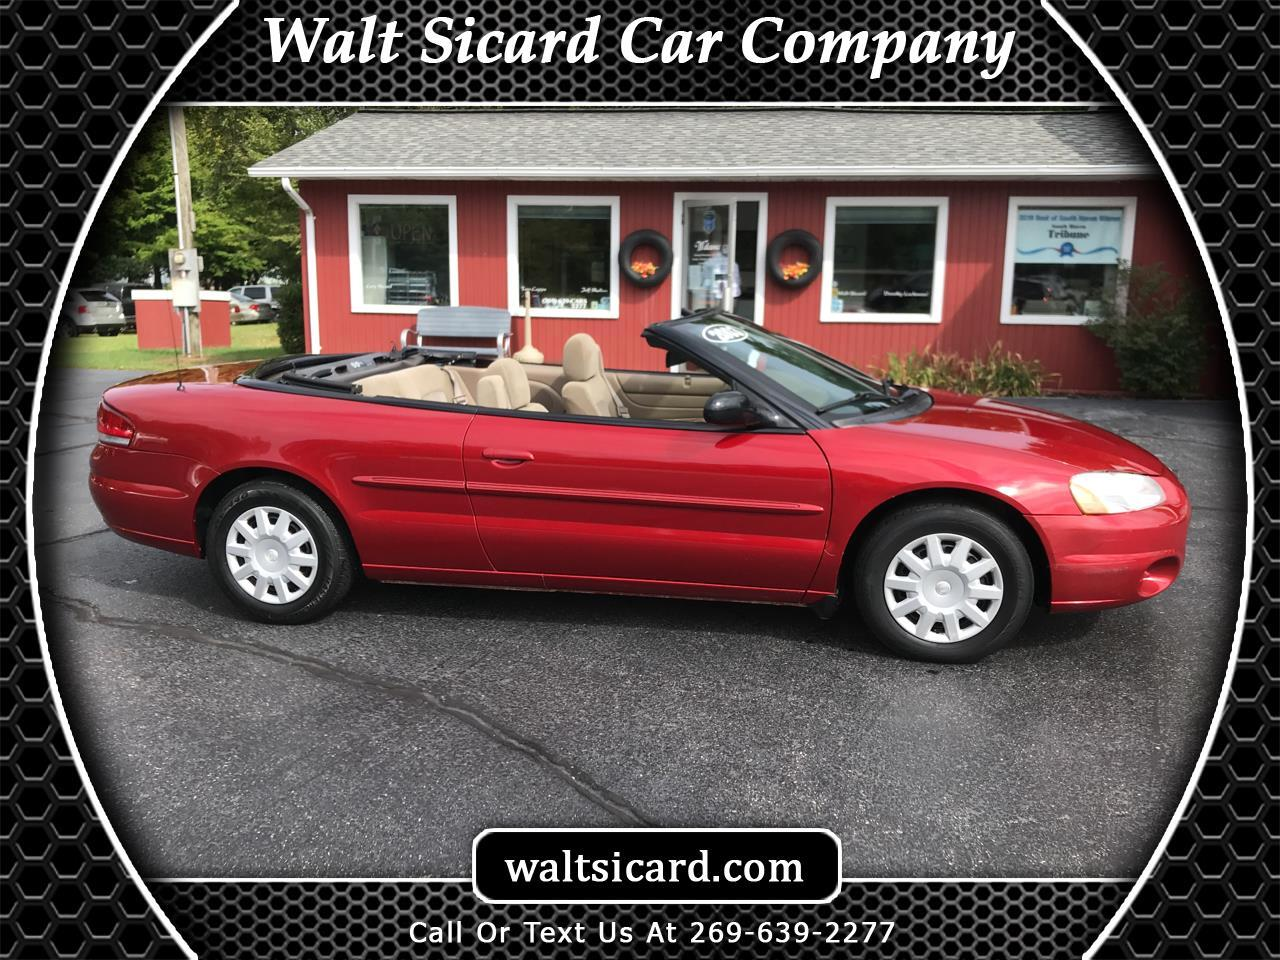 Chrysler Sebring 2dr Convertible LX 2003